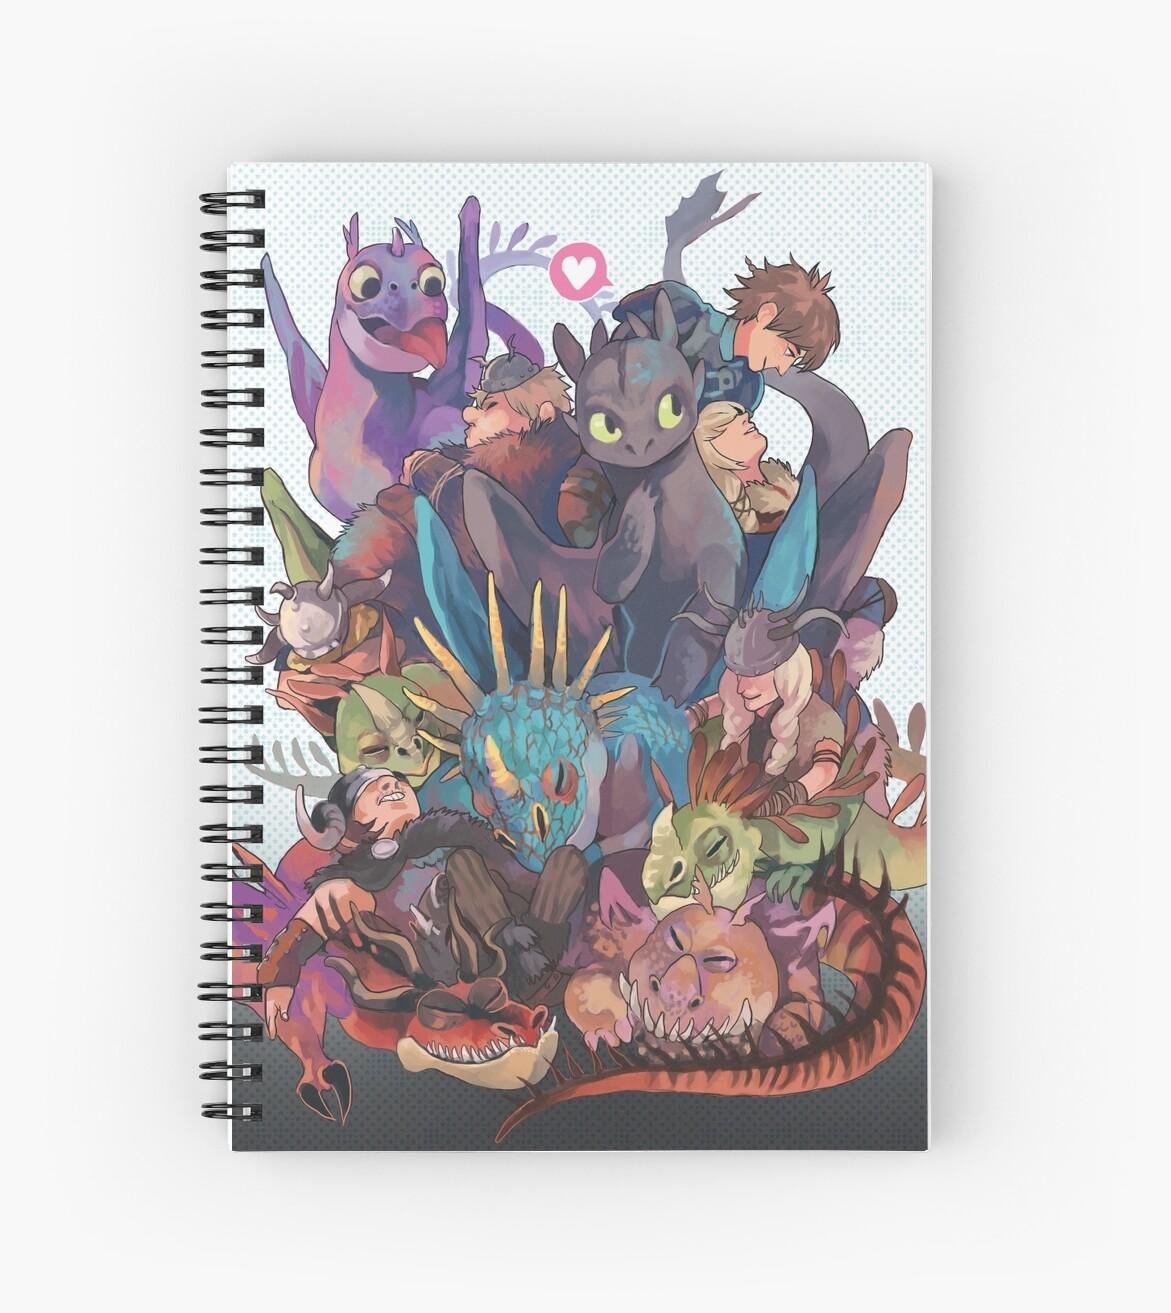 How To Train Your Dragon Spiral Notebooks By Kelpls Redbubble